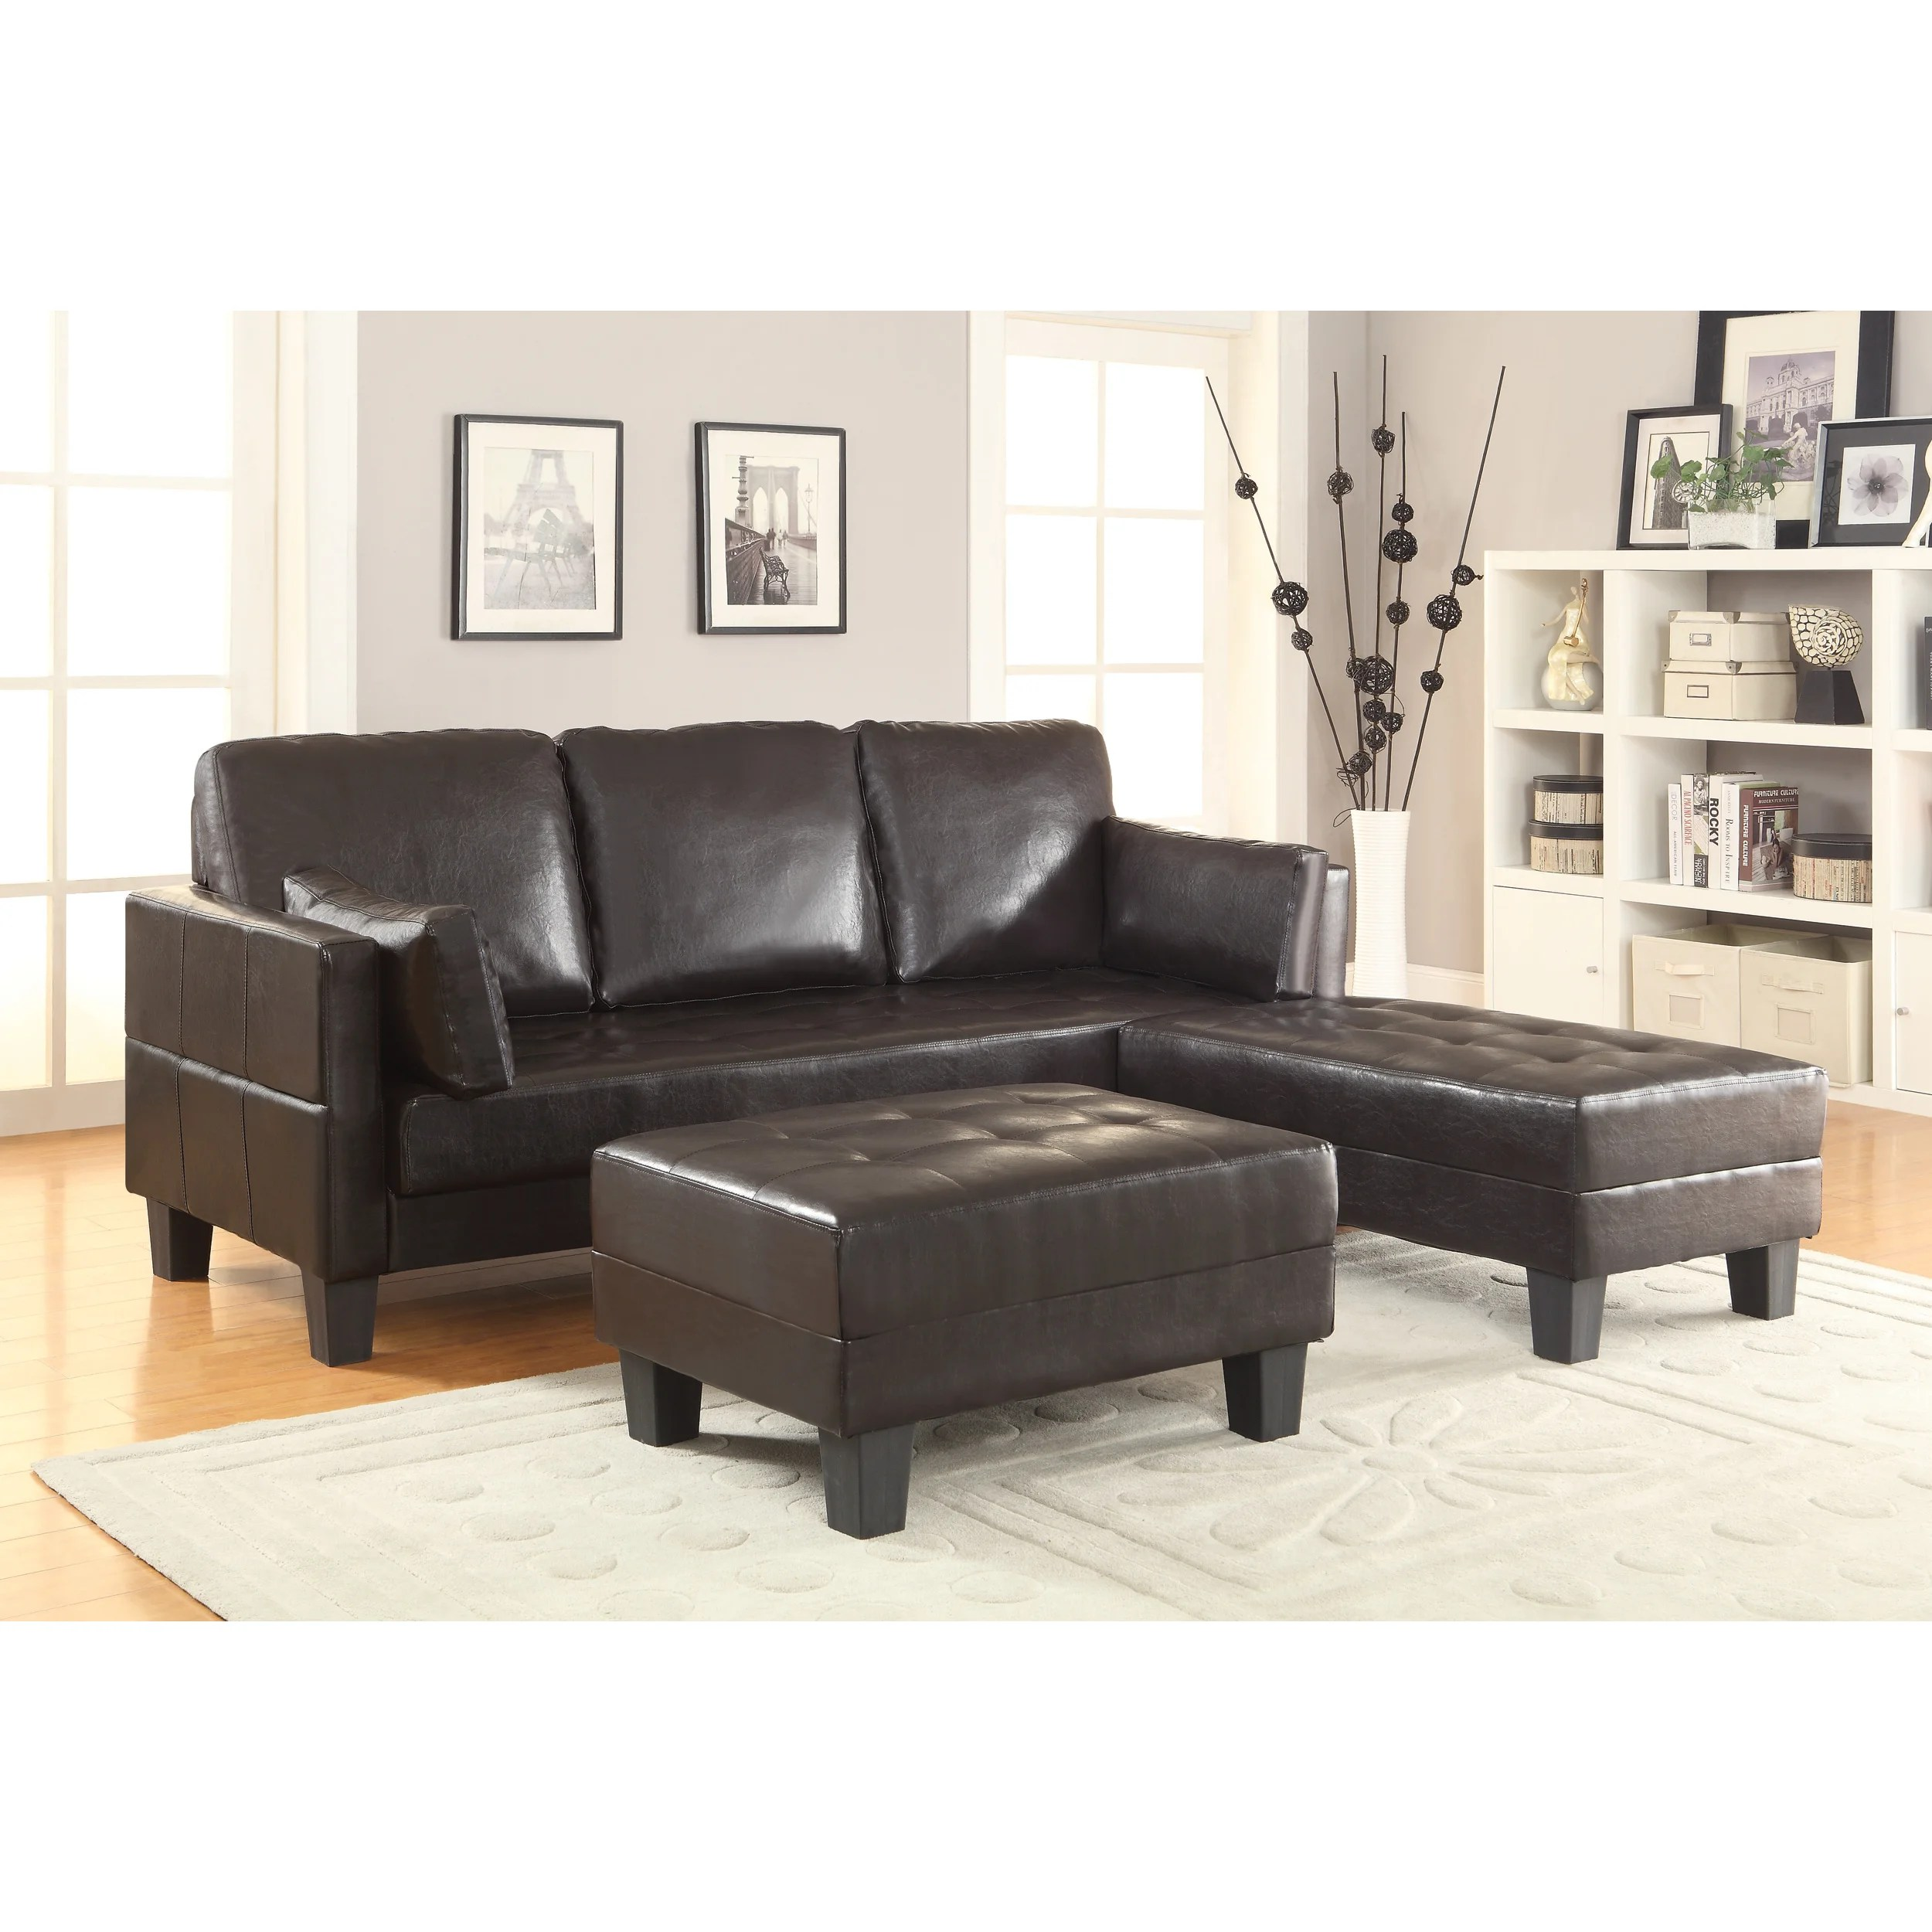 cape town sofa reviews durable leather bed wildon home  sleeper and 2 ottomans wayfair